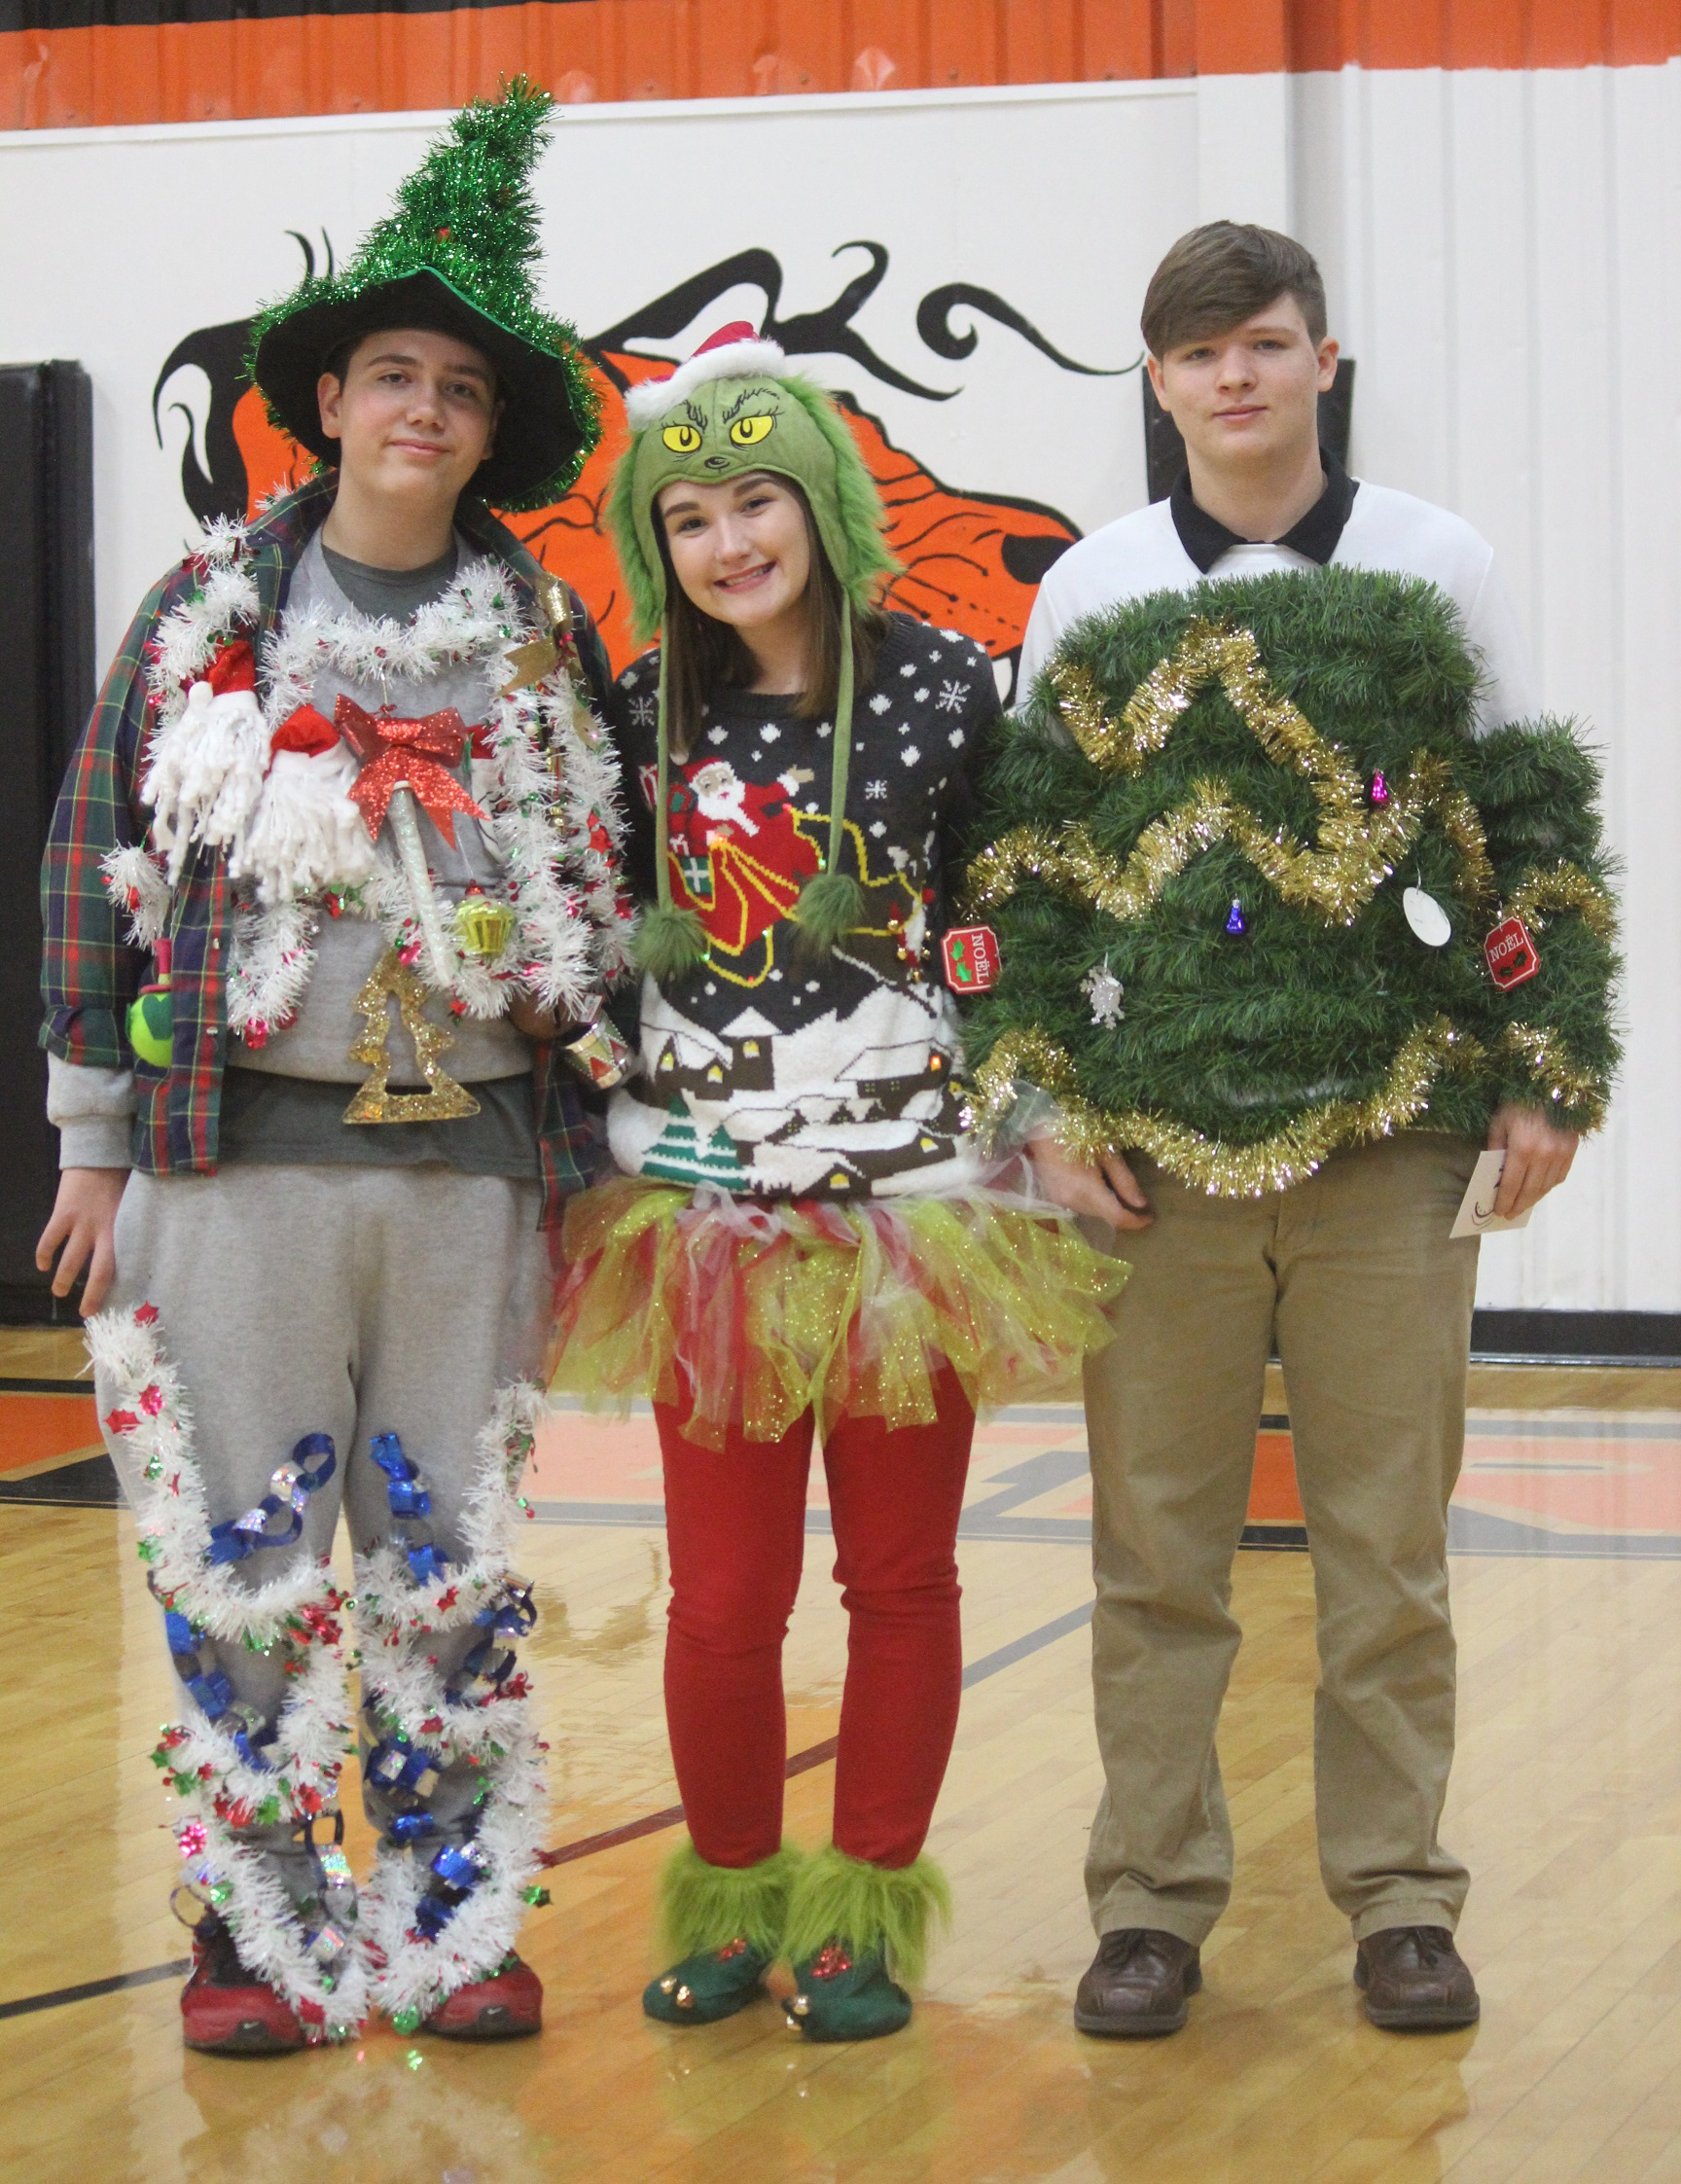 Ugly Christmas Sweater Contest At Chs